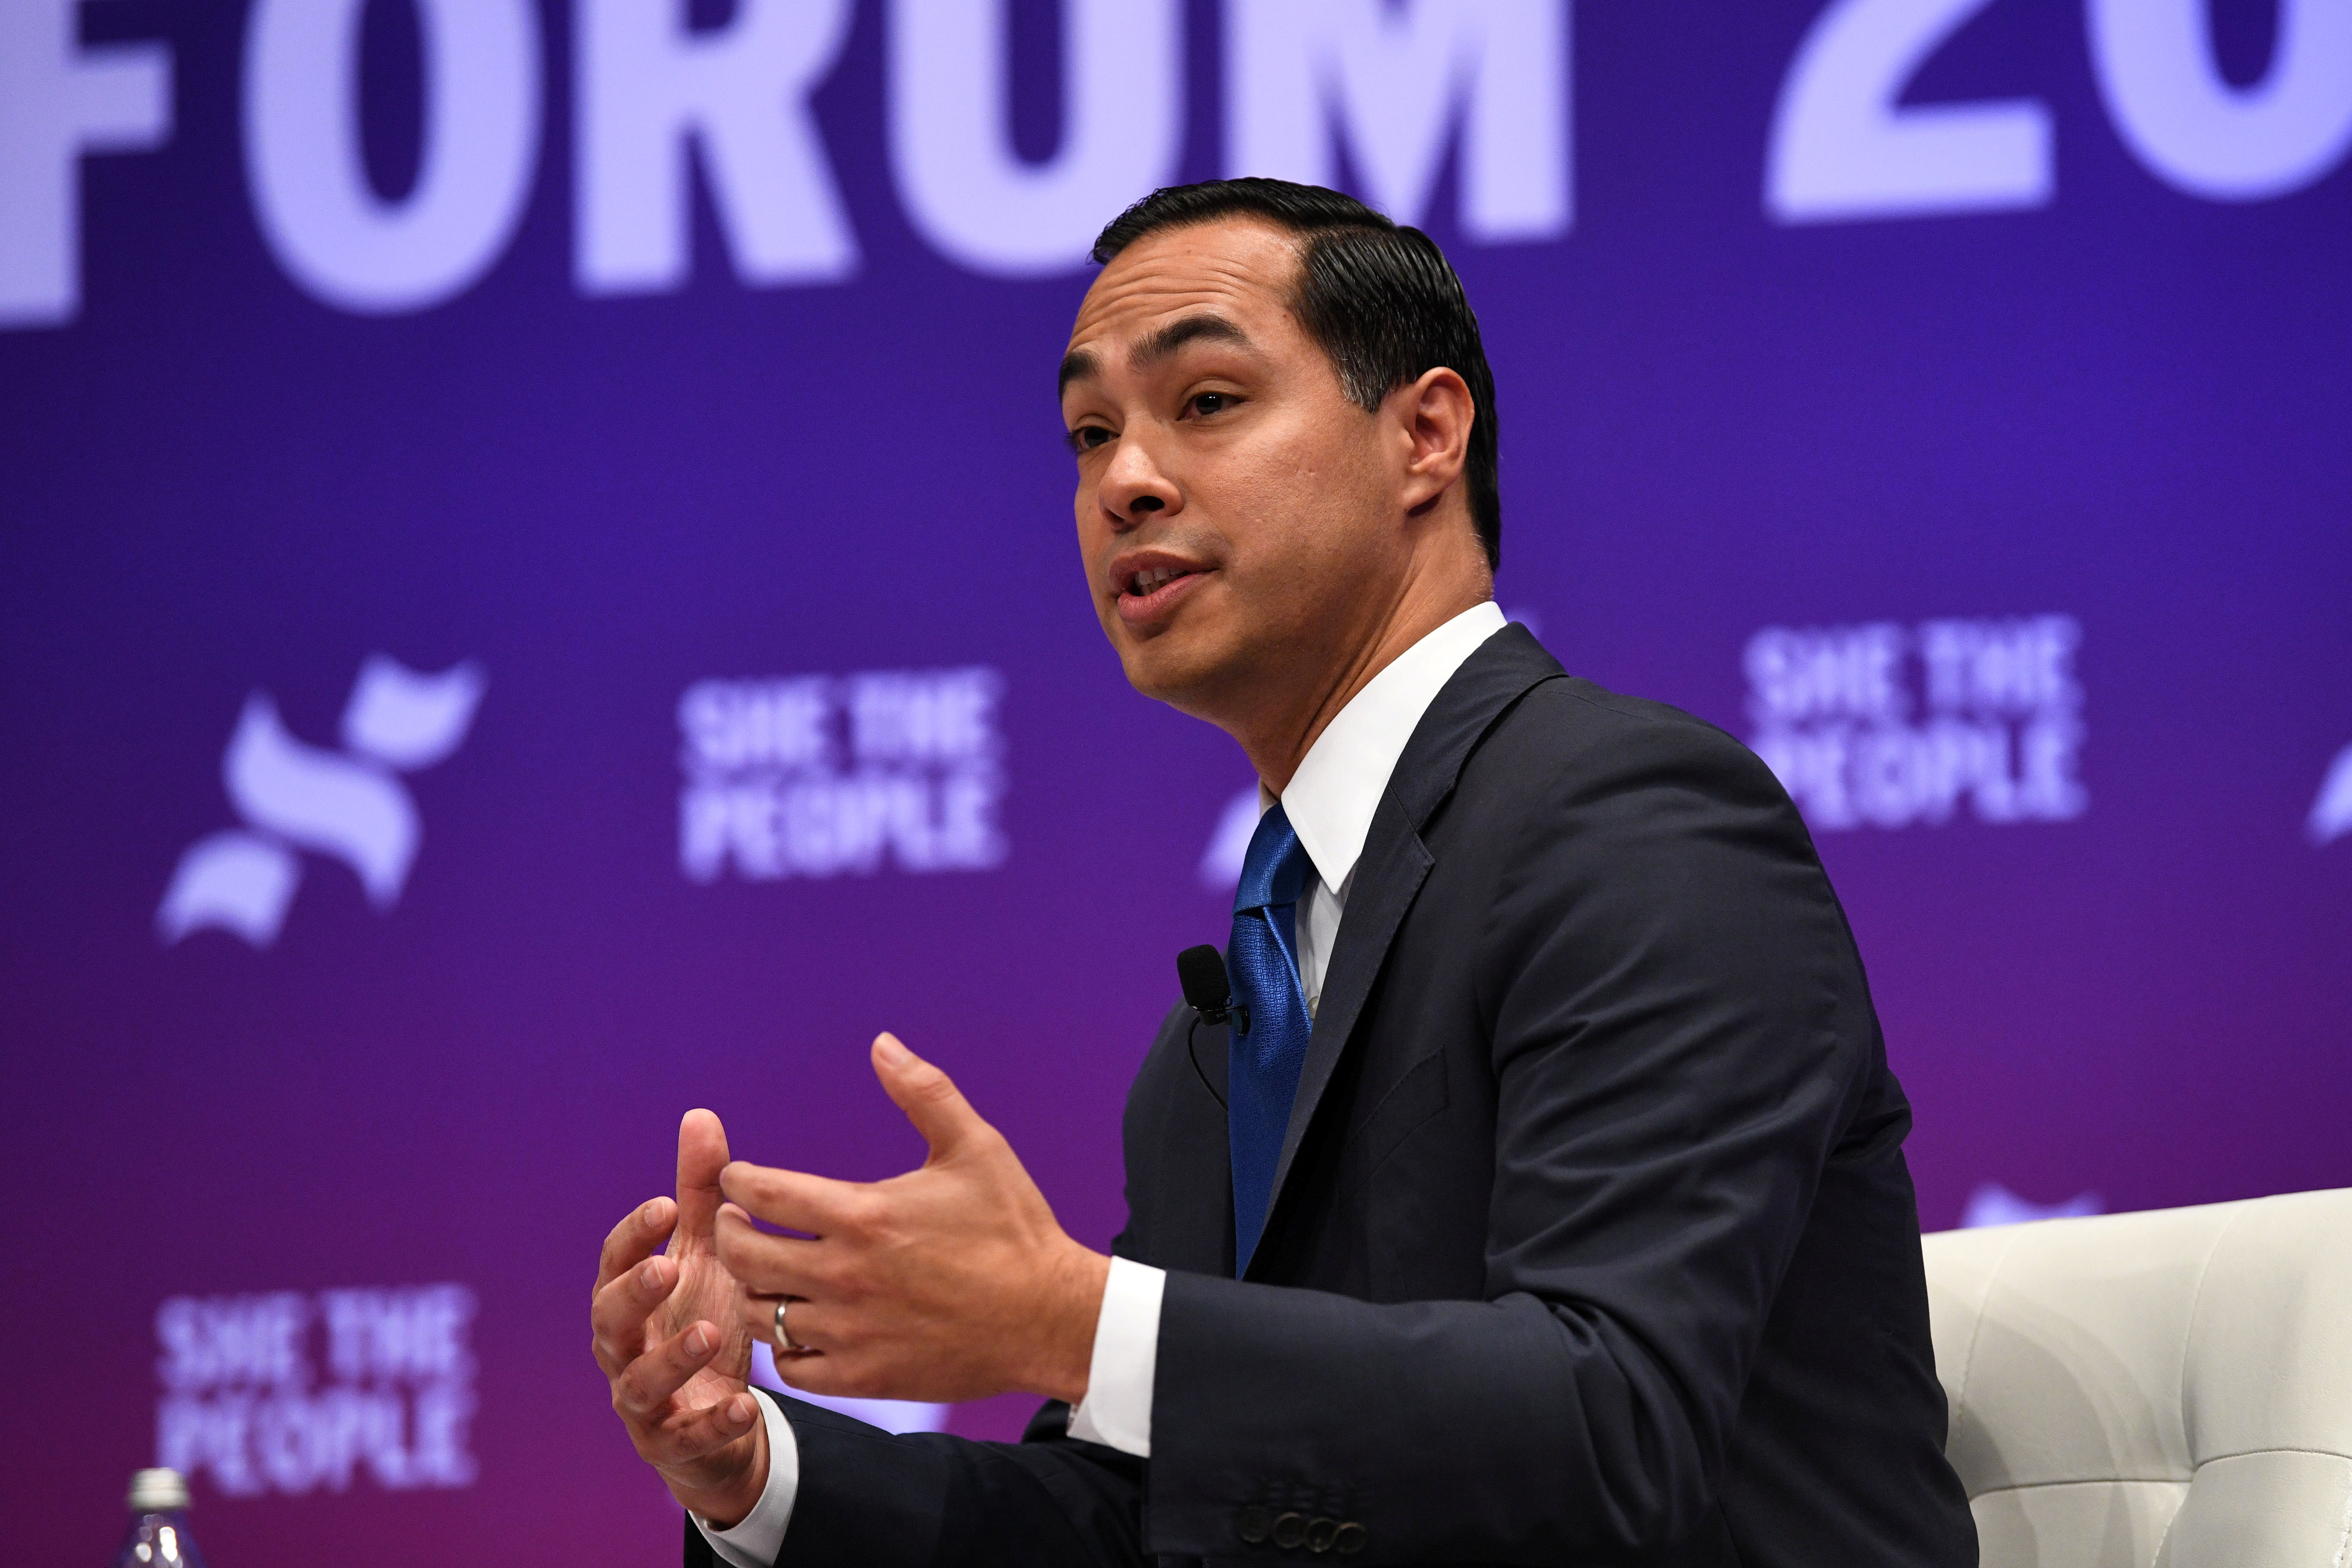 U.S. Democratic presidential candidate Julian Castro participates in the She the People Presidential Forum in Houston, Texas, U.S. April 24, 2019. REUTERS/Loren Elliott